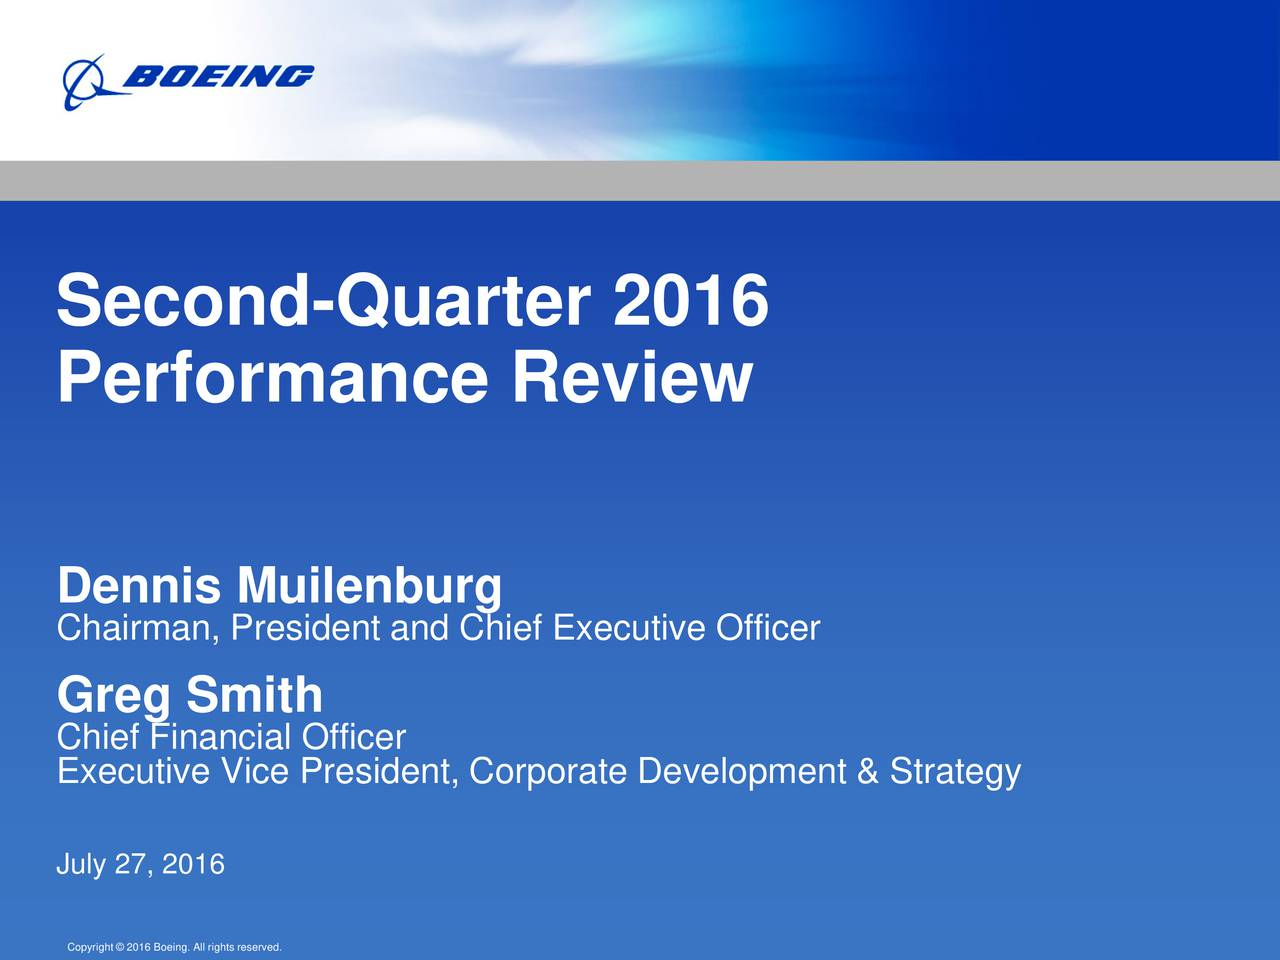 Performance Review Dennis Muilenburg Chairman, President and Chief Executive Officer Greg Smith Chief Financial Officer Executive Vice President, Corporate Development & Strategy July 27, 2016